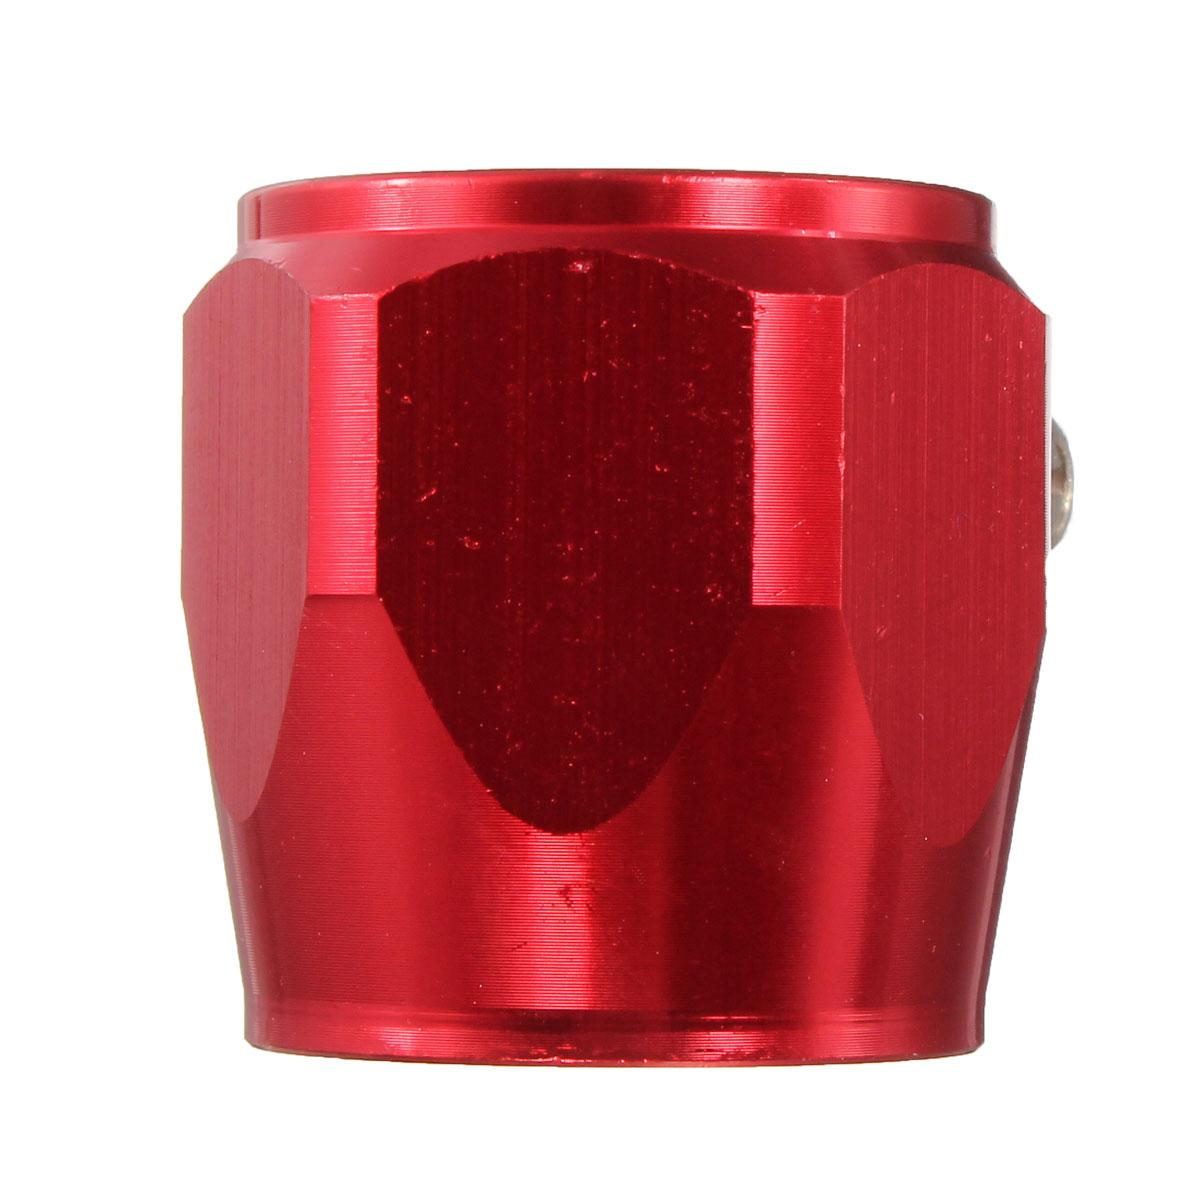 AN12 12 AN 24mm RED HOSE END FINISHER Fuel Oil Water Pipe JUBILEE CLIP Clamp